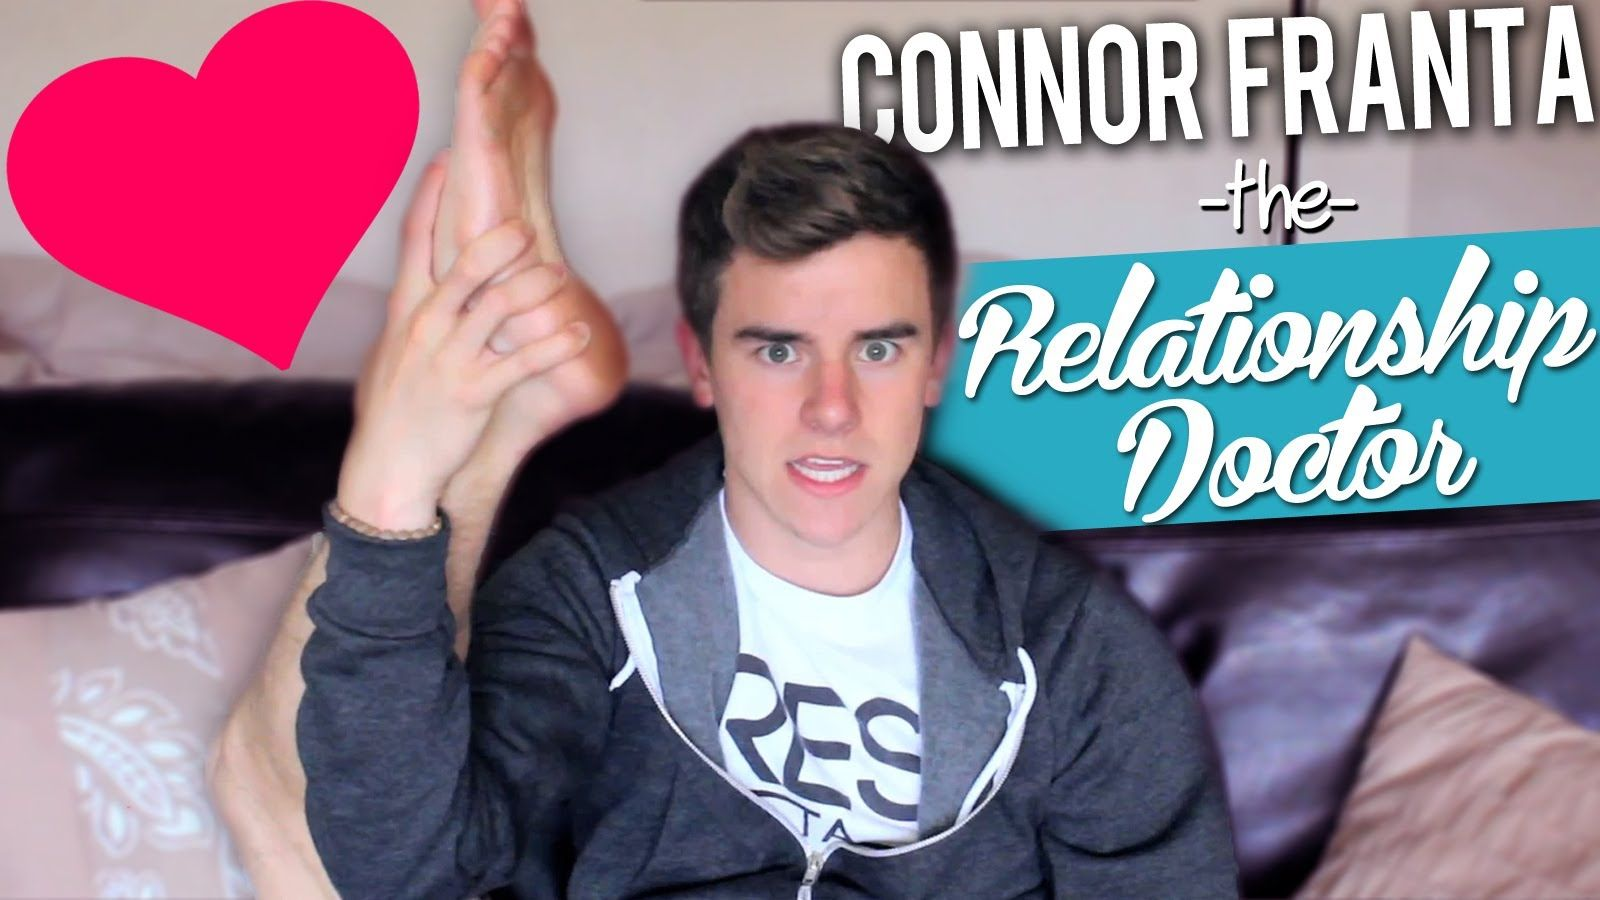 Connor Franta the Relationship Doctor (+playlist)